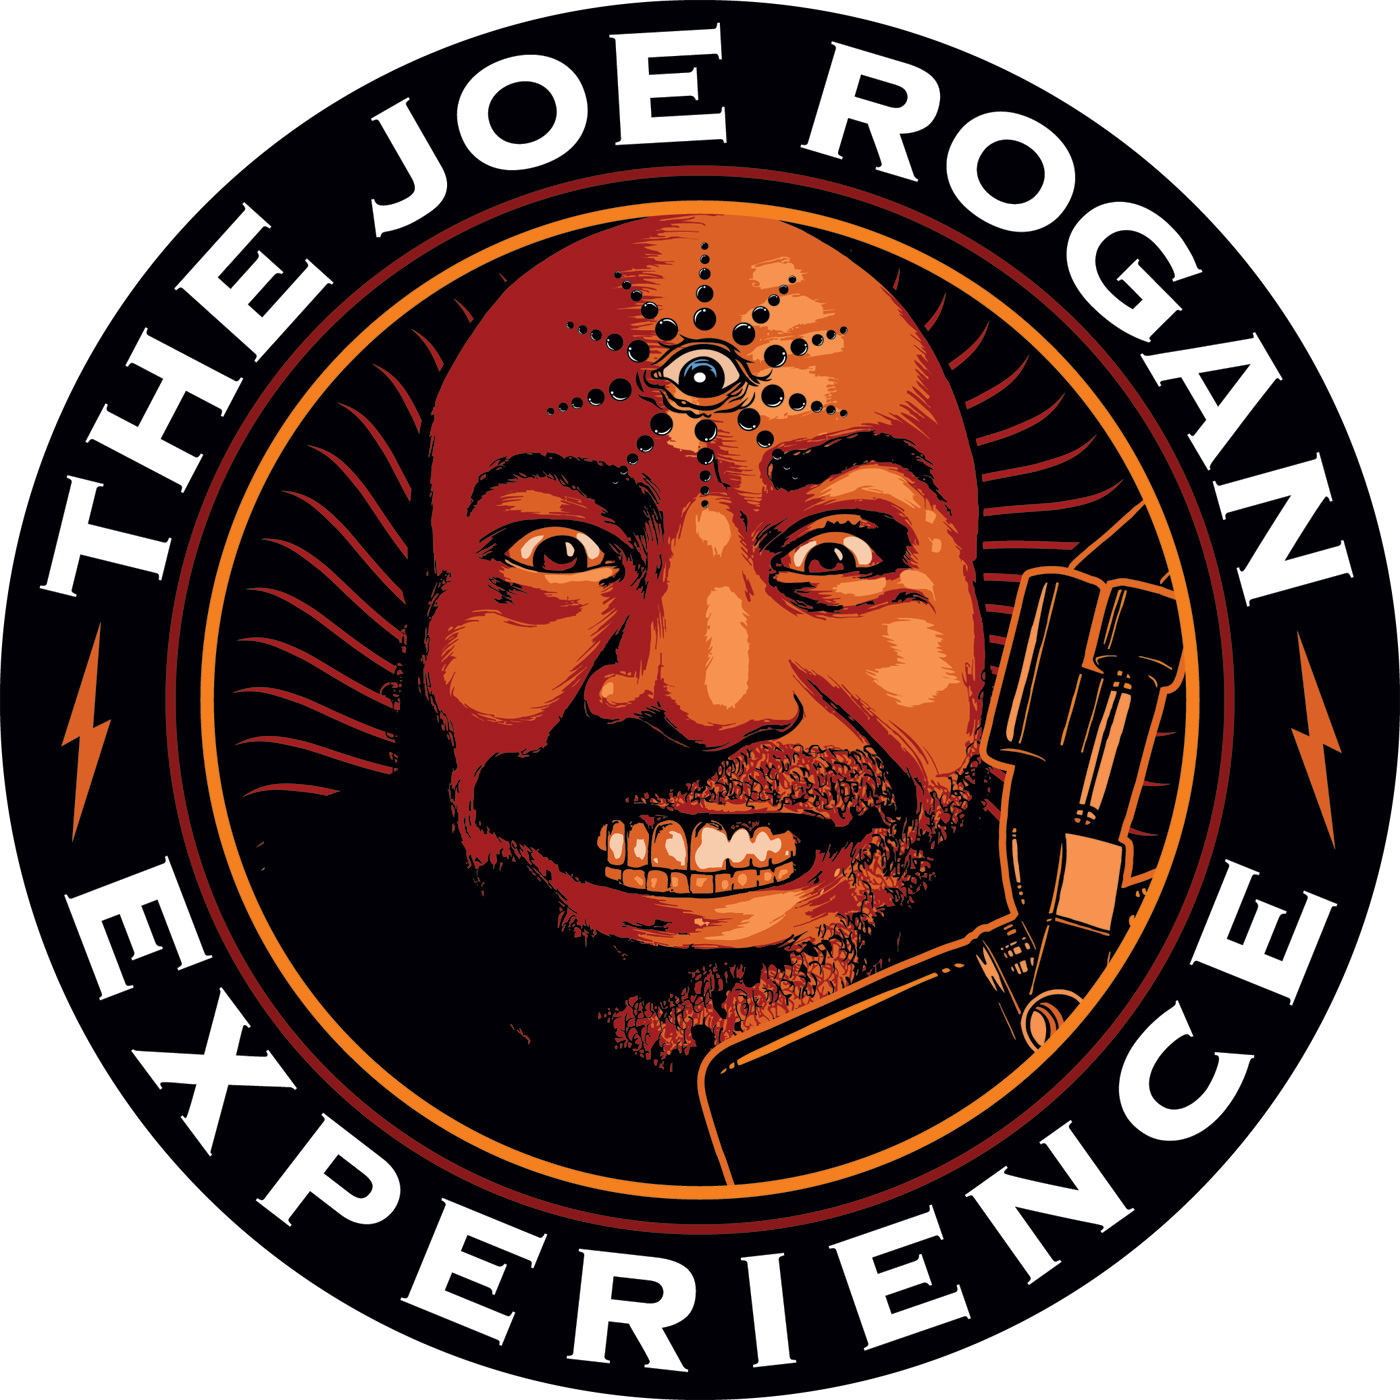 The Joe Rogan Experience Fight Companion - May 10, 2014